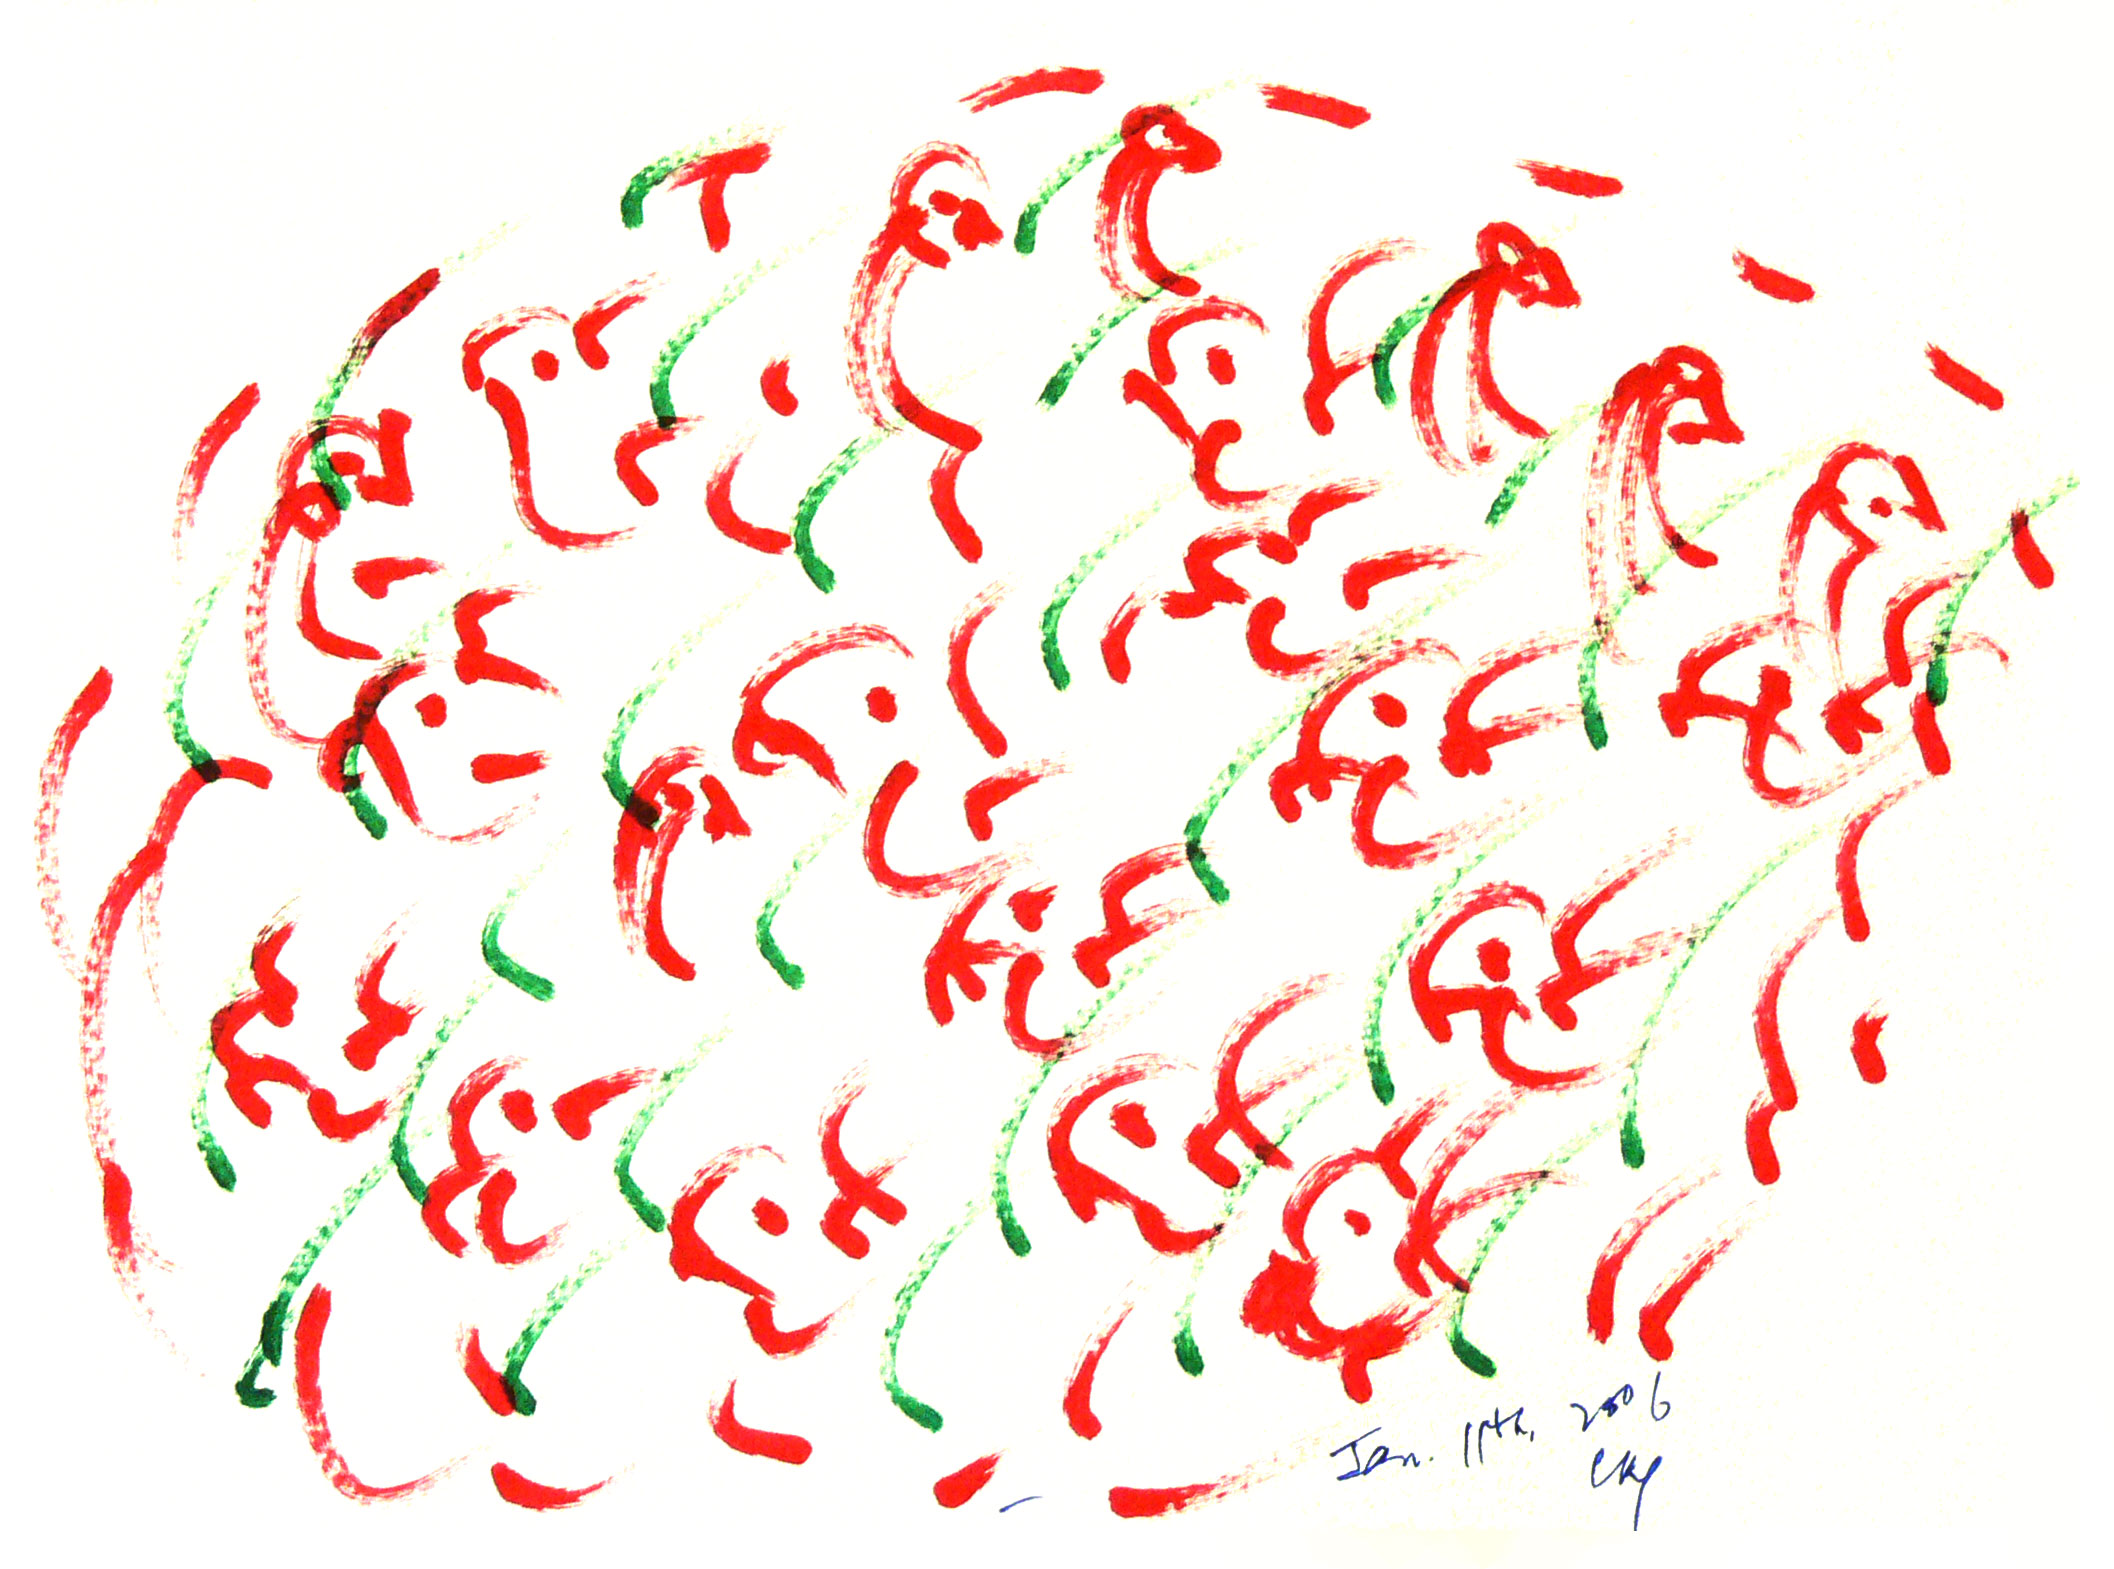 Soul-Bird-Drawing-by-Sri-Chinmoy-11-1-2006-4